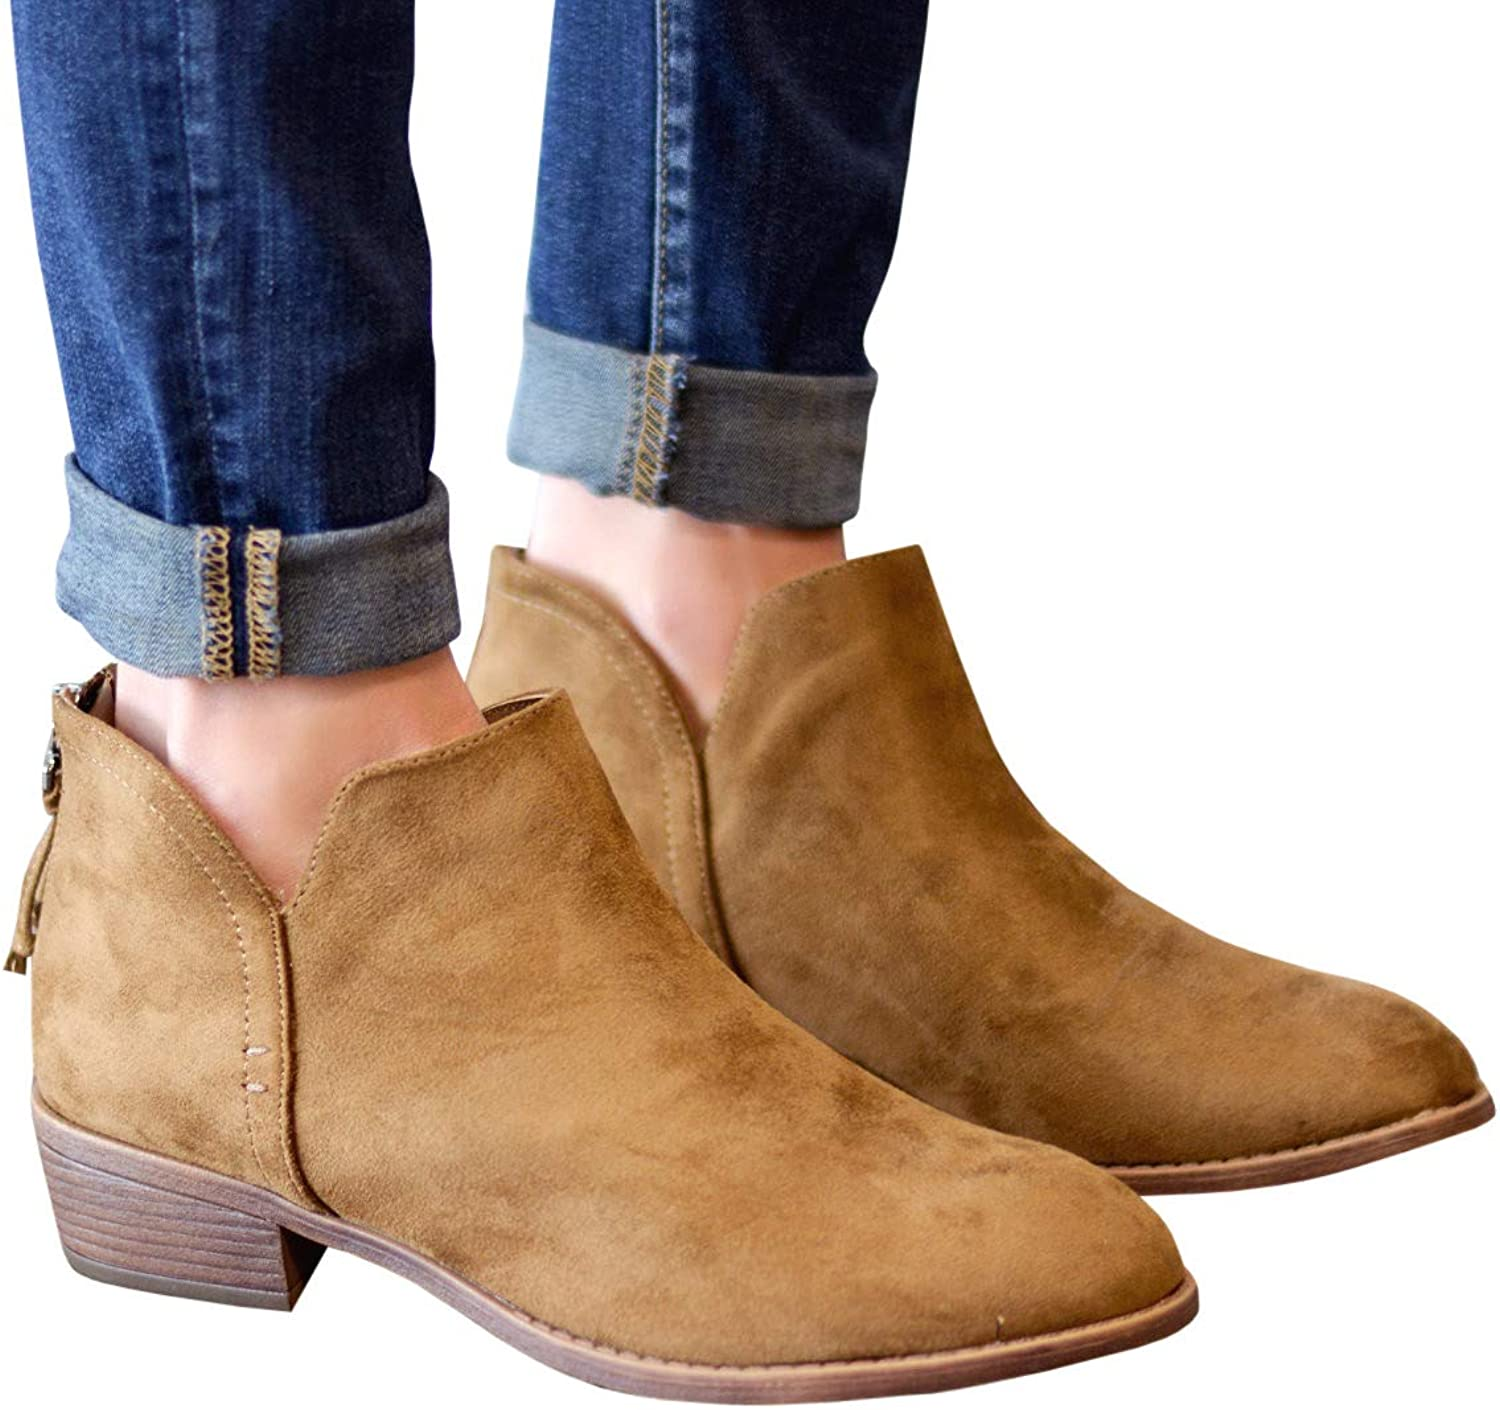 CNJFJ Womens Western Cowboy Ankle Boots Slip on Ankle Low Heel Zipper Back Round Toe Bootie shoes